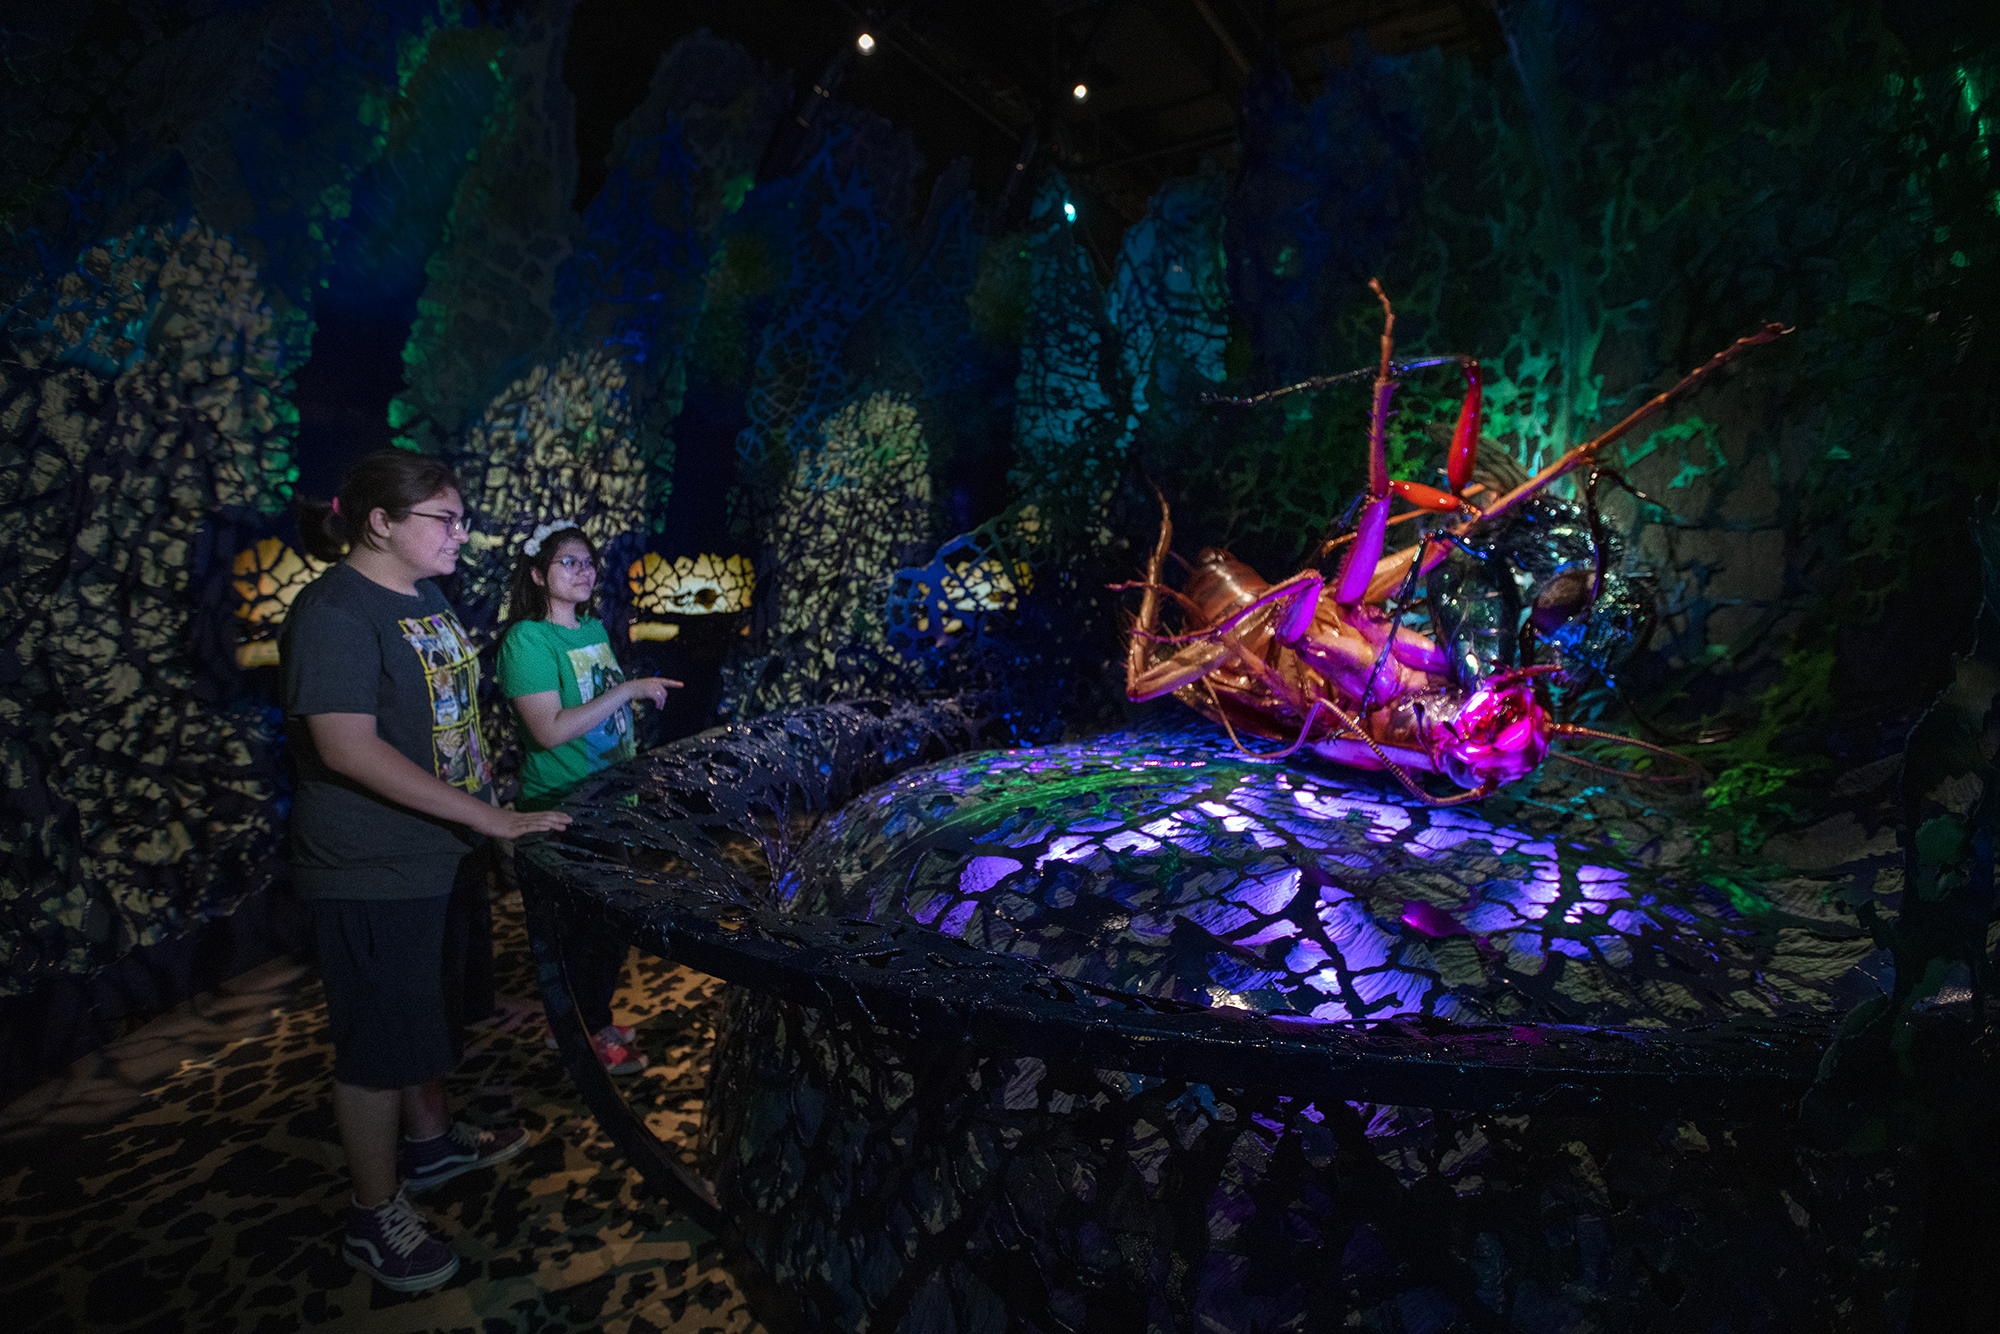 Two people observe a large, illuminate model of two insects battling each other. The lighting is mysterious, with purple, pink, and green lights. A latticed wall surrounds the whole display.